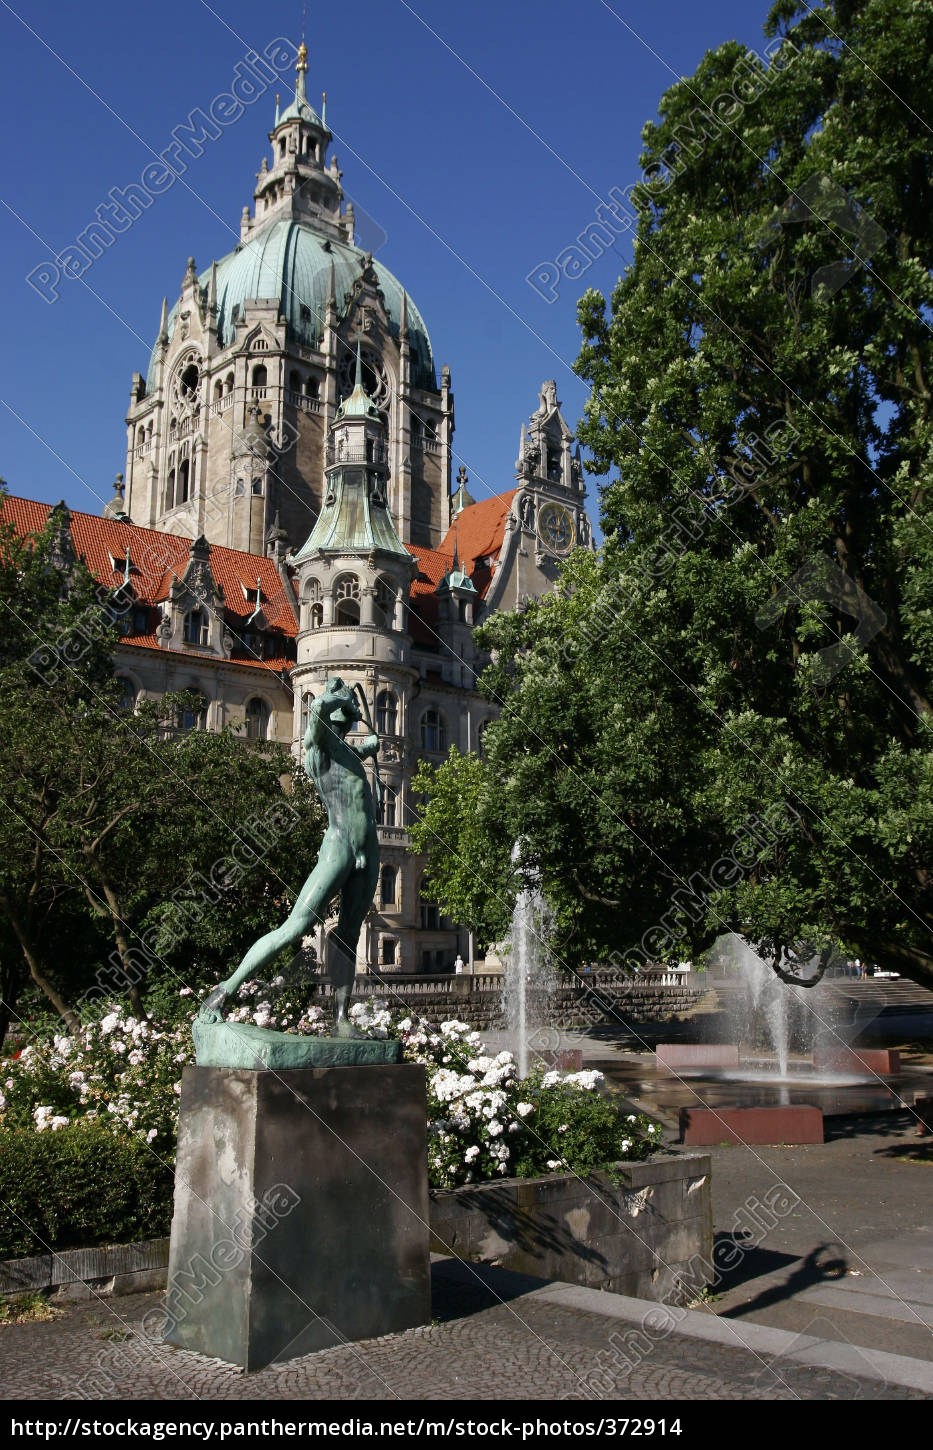 hannover, 3 - 372914